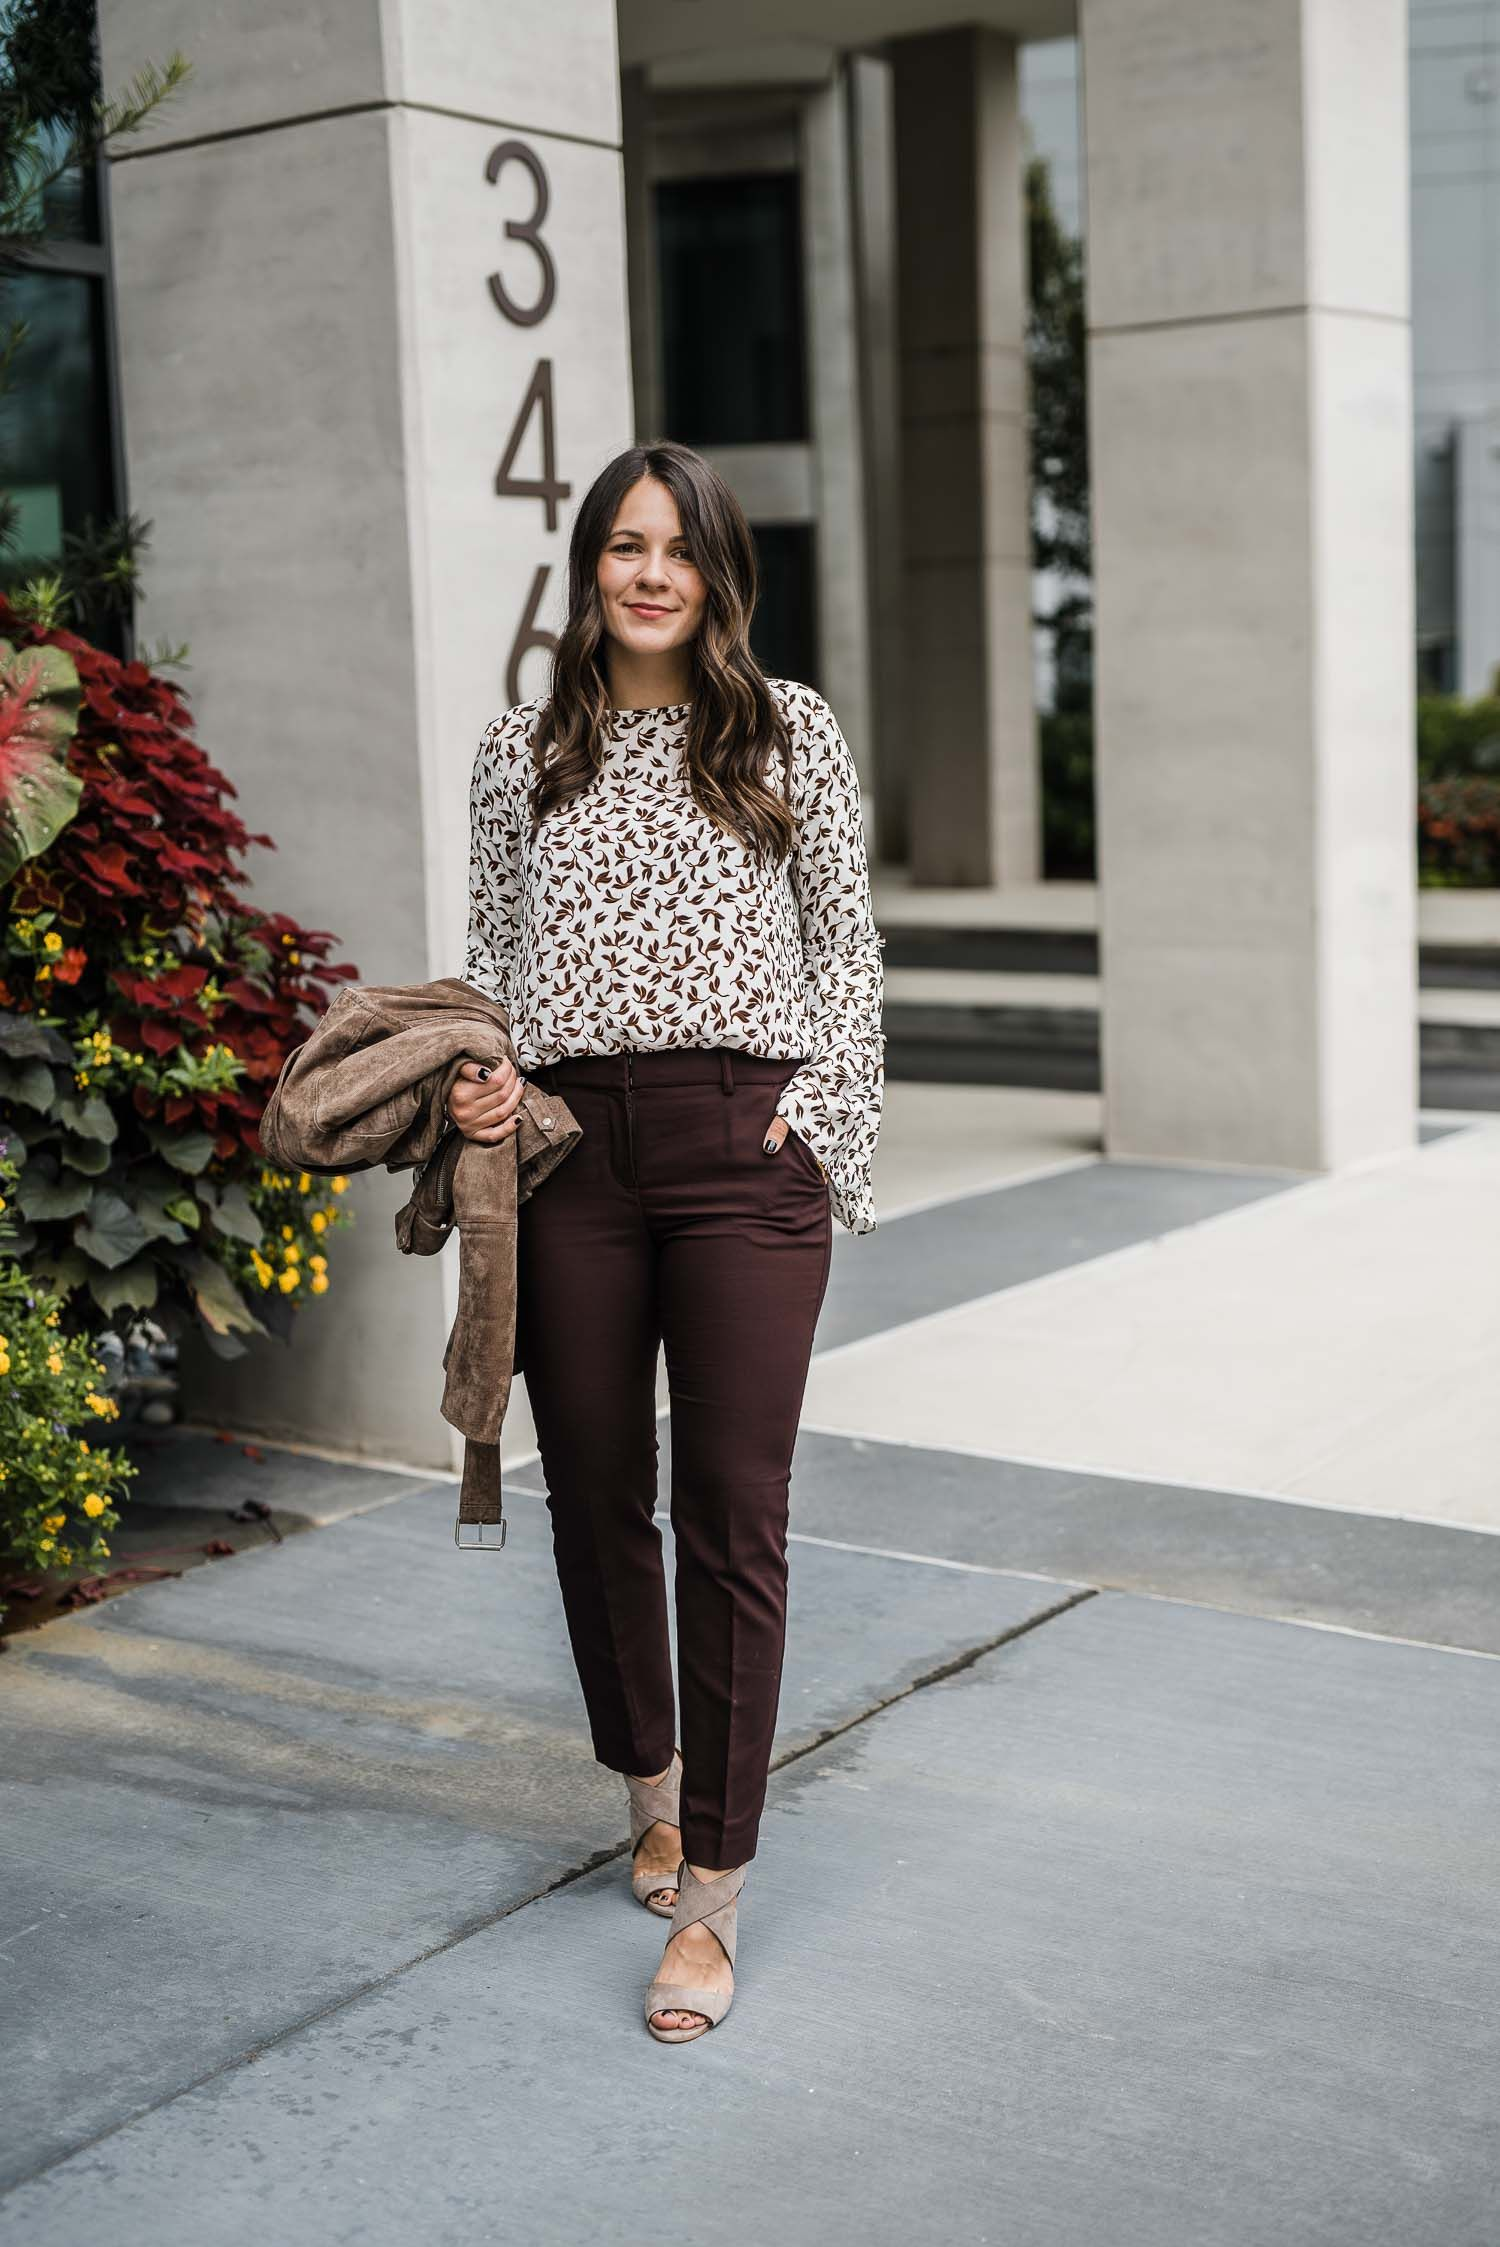 Bad Taste Outfit Vorschläge Casual Work Outfit Ideas For Fall Fall Fashion Forward